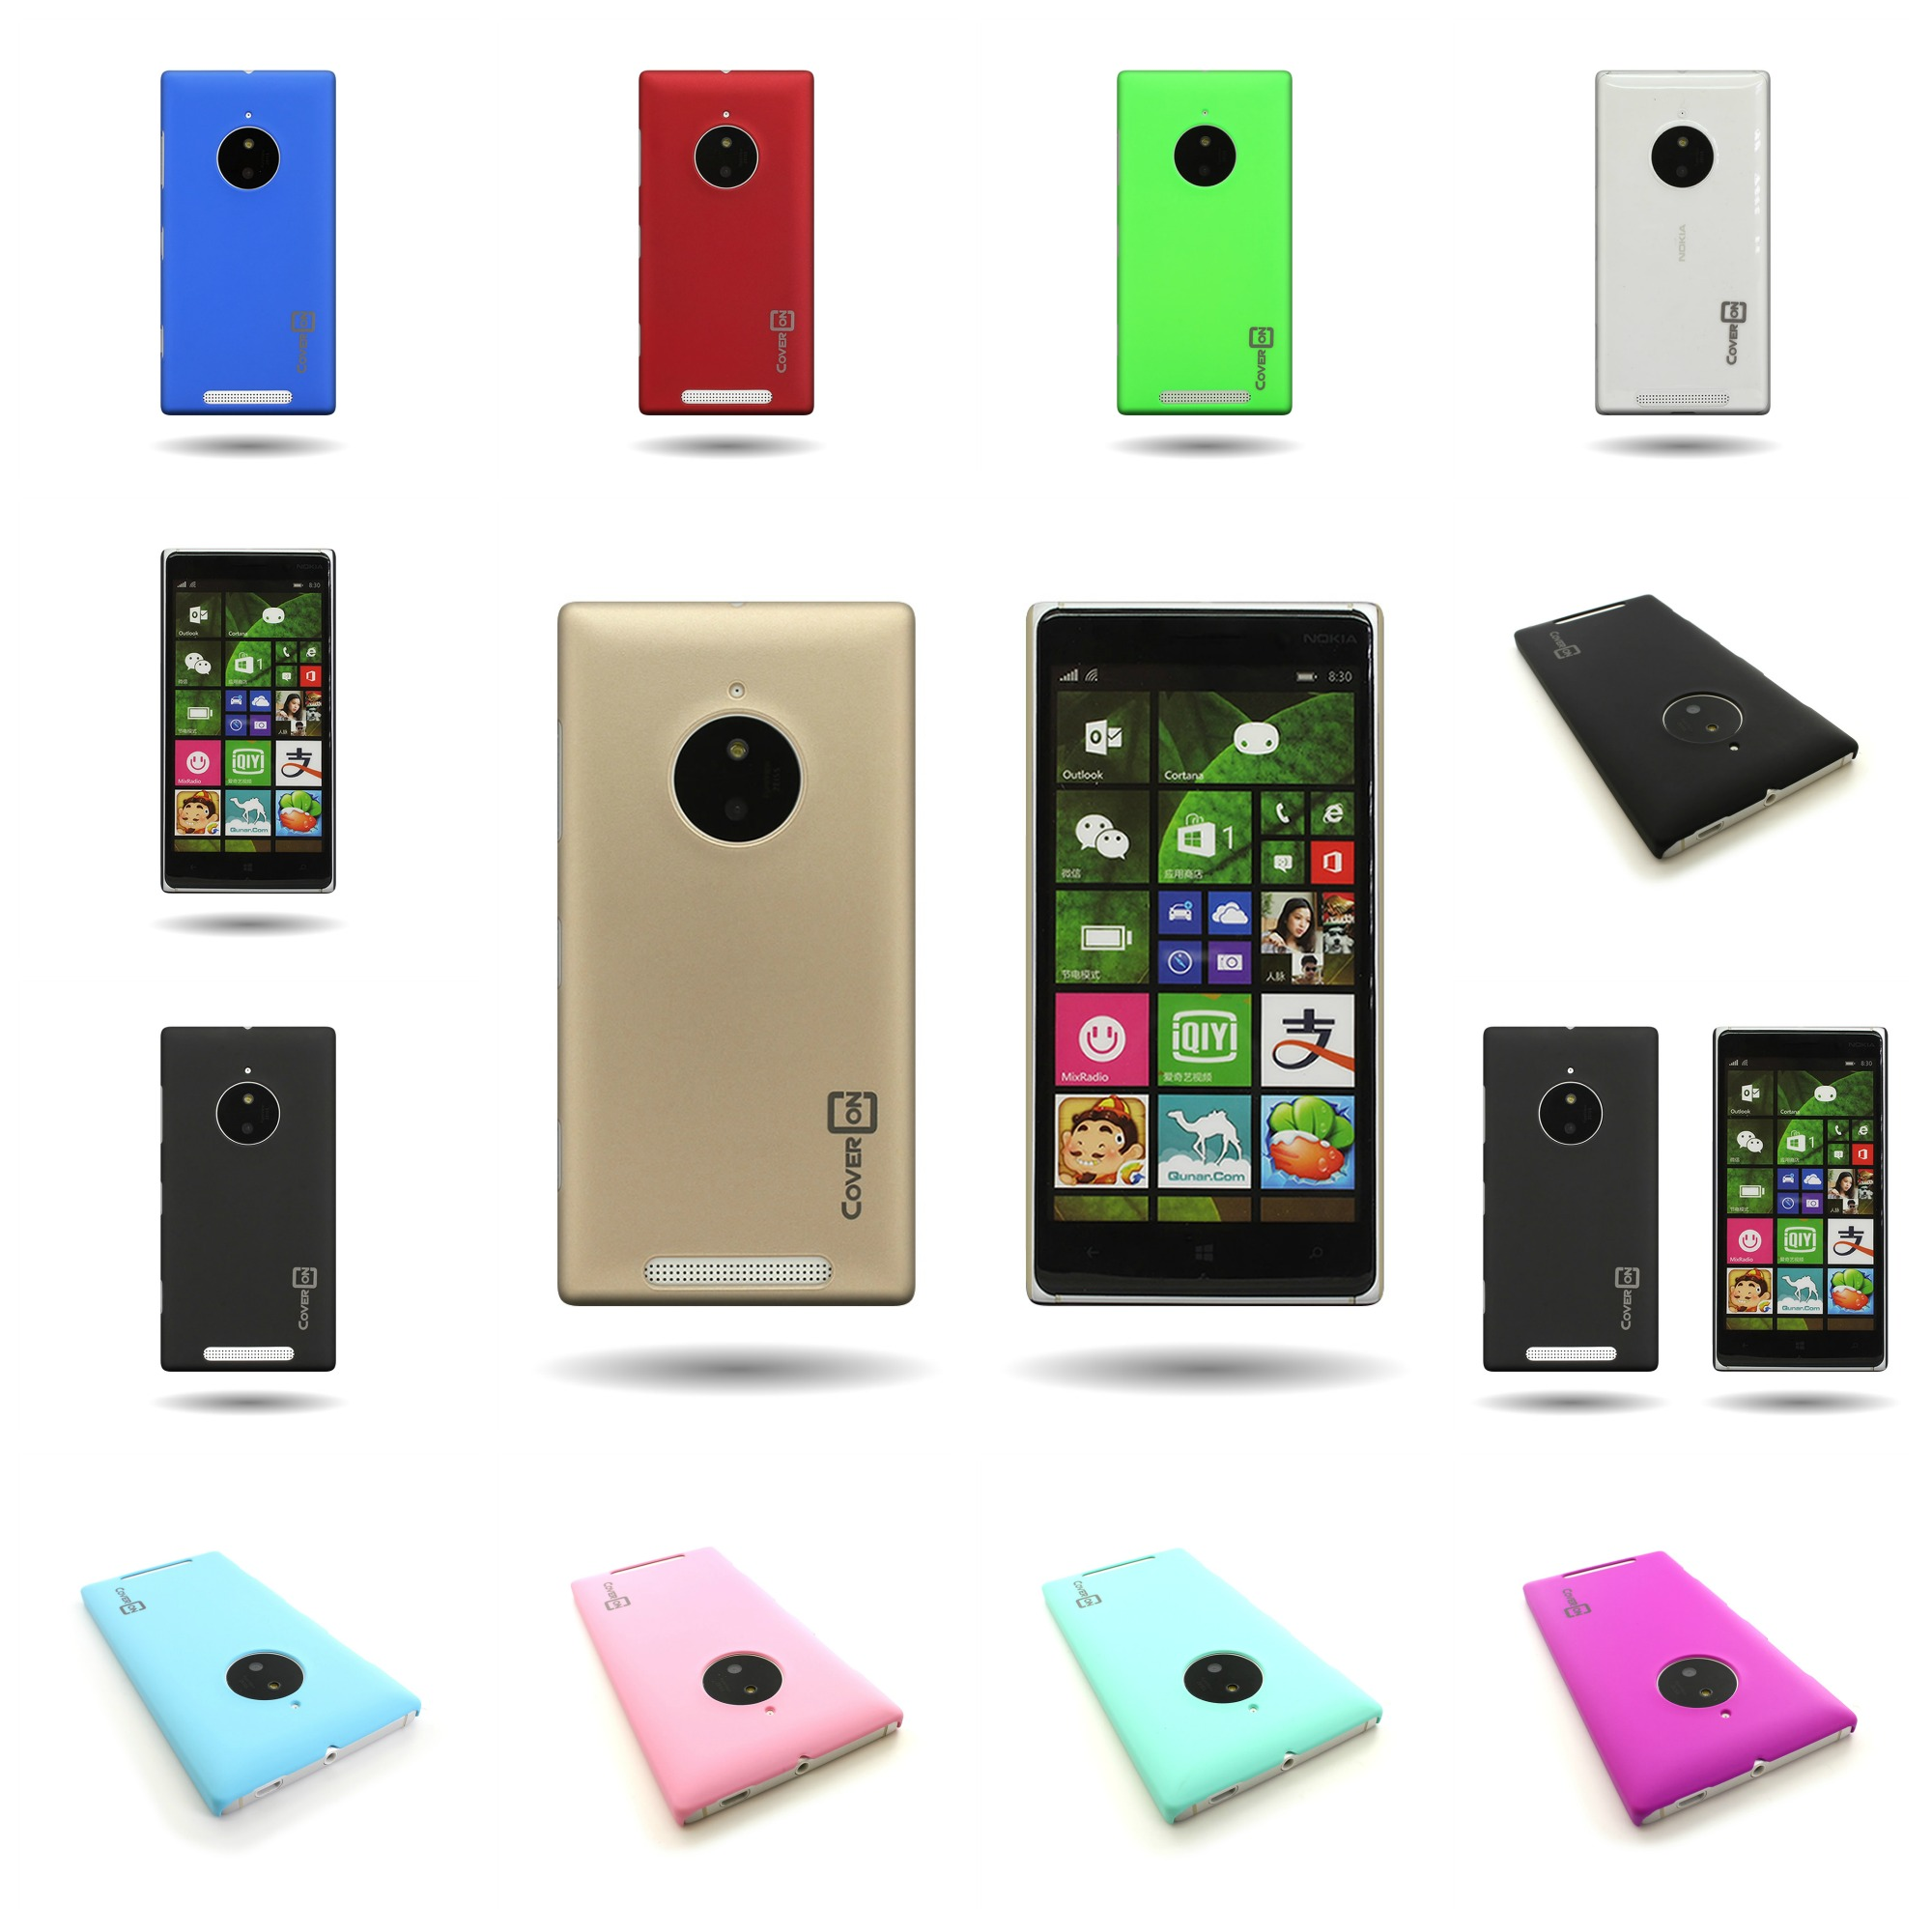 another chance db5e9 9f989 Details about For Nokia Lumia 830 - Slim Phone Case Protector Hard  Rubberized Back Cover Shell